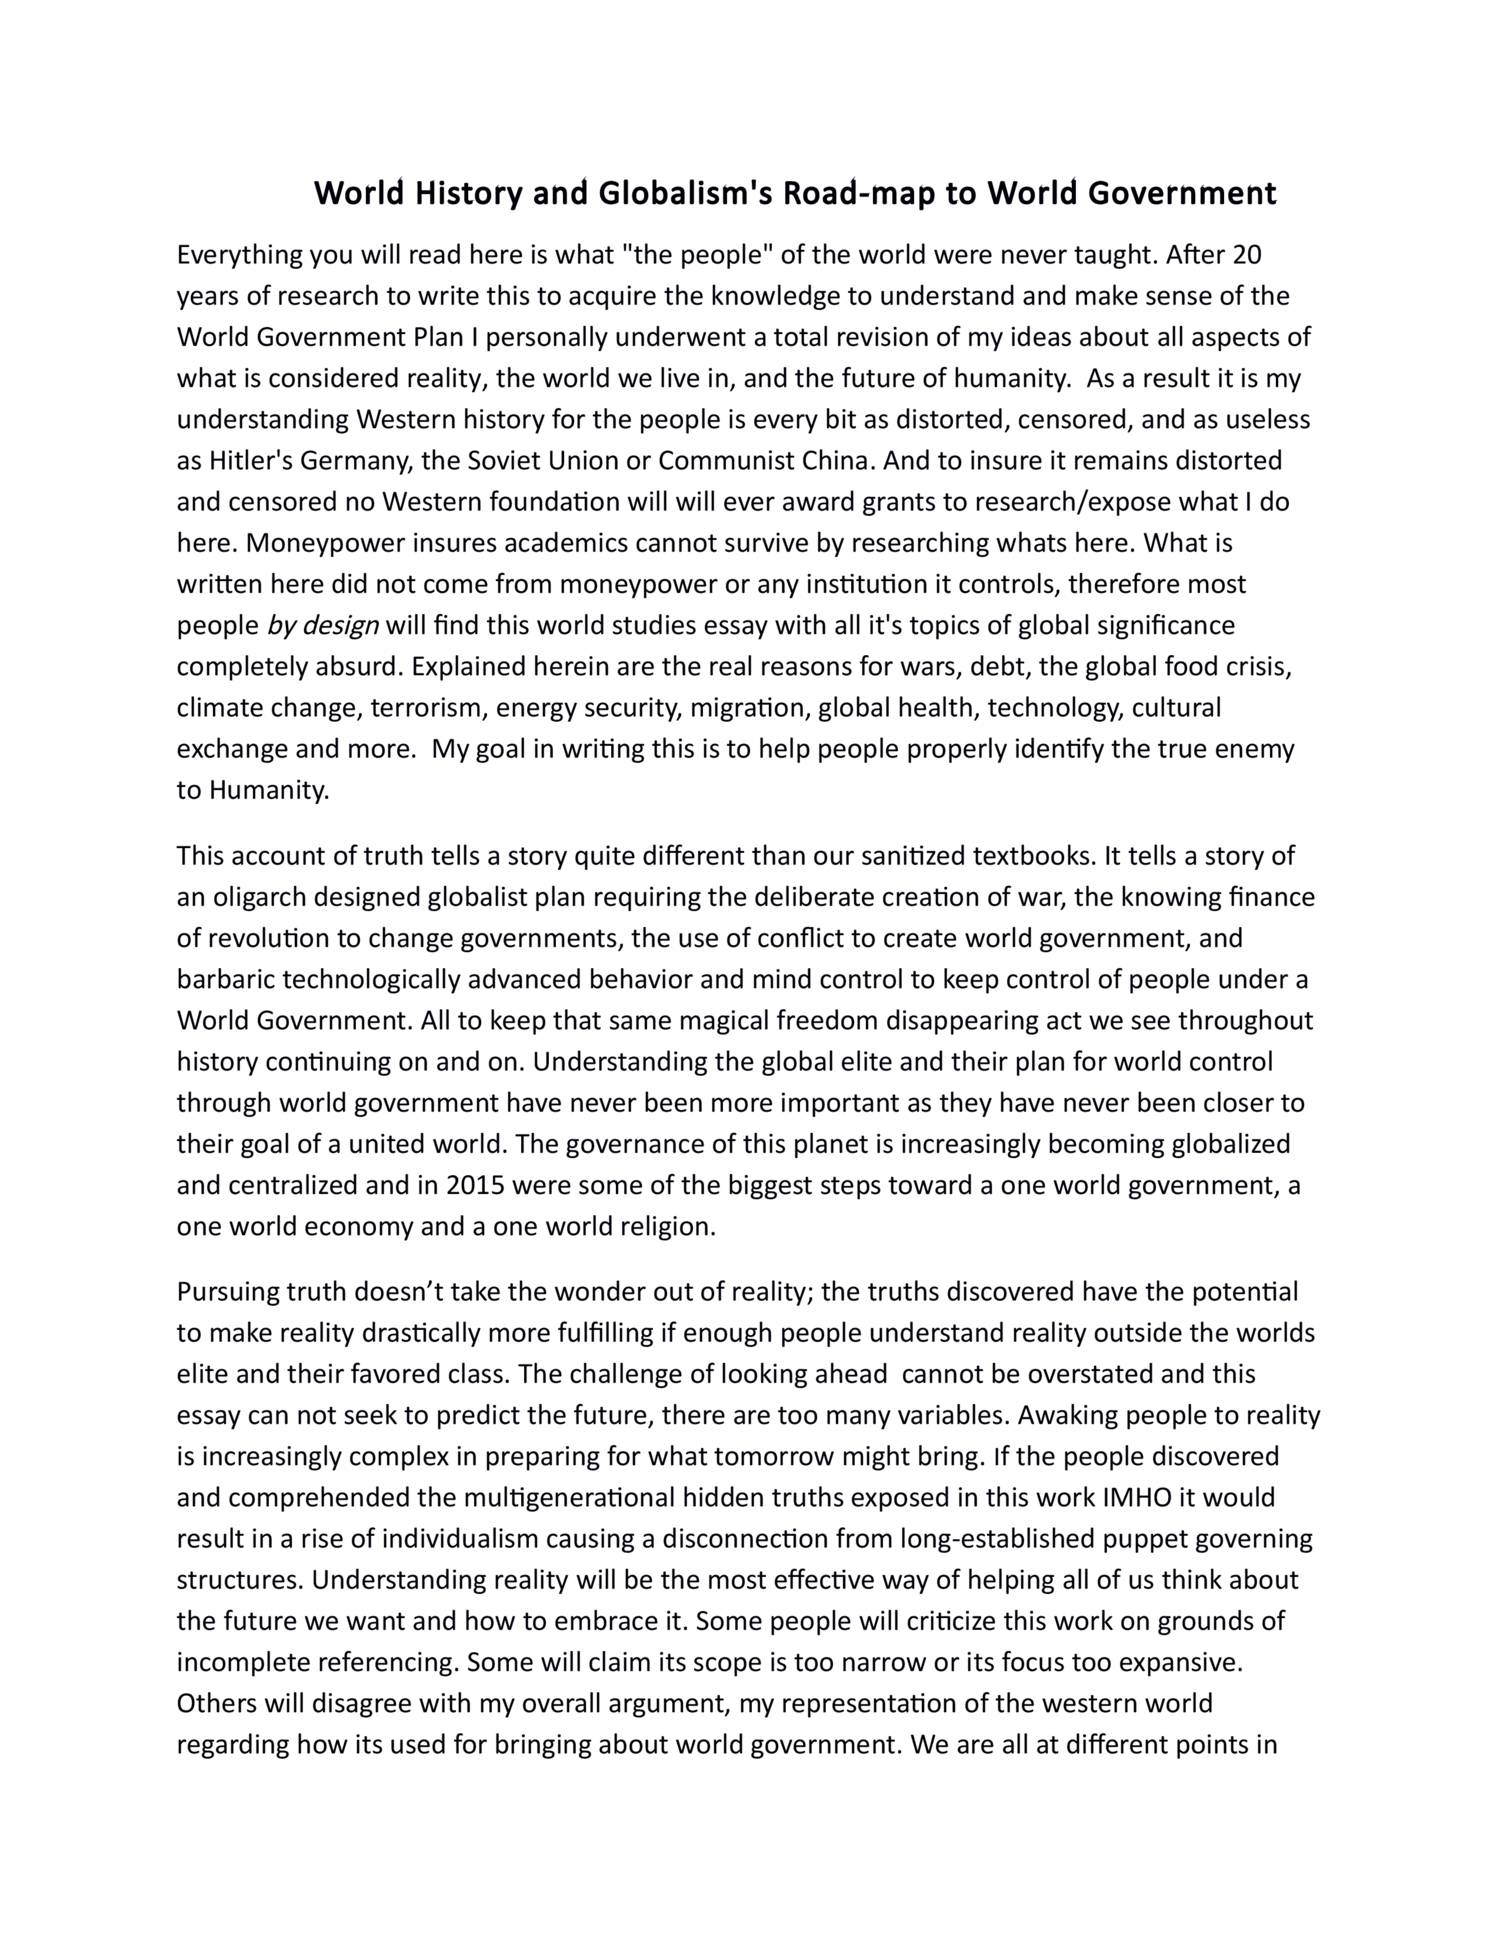 essay on energy crisis short essay on the energy crisis in the  roadmap to world governmentpart of odt docdroid